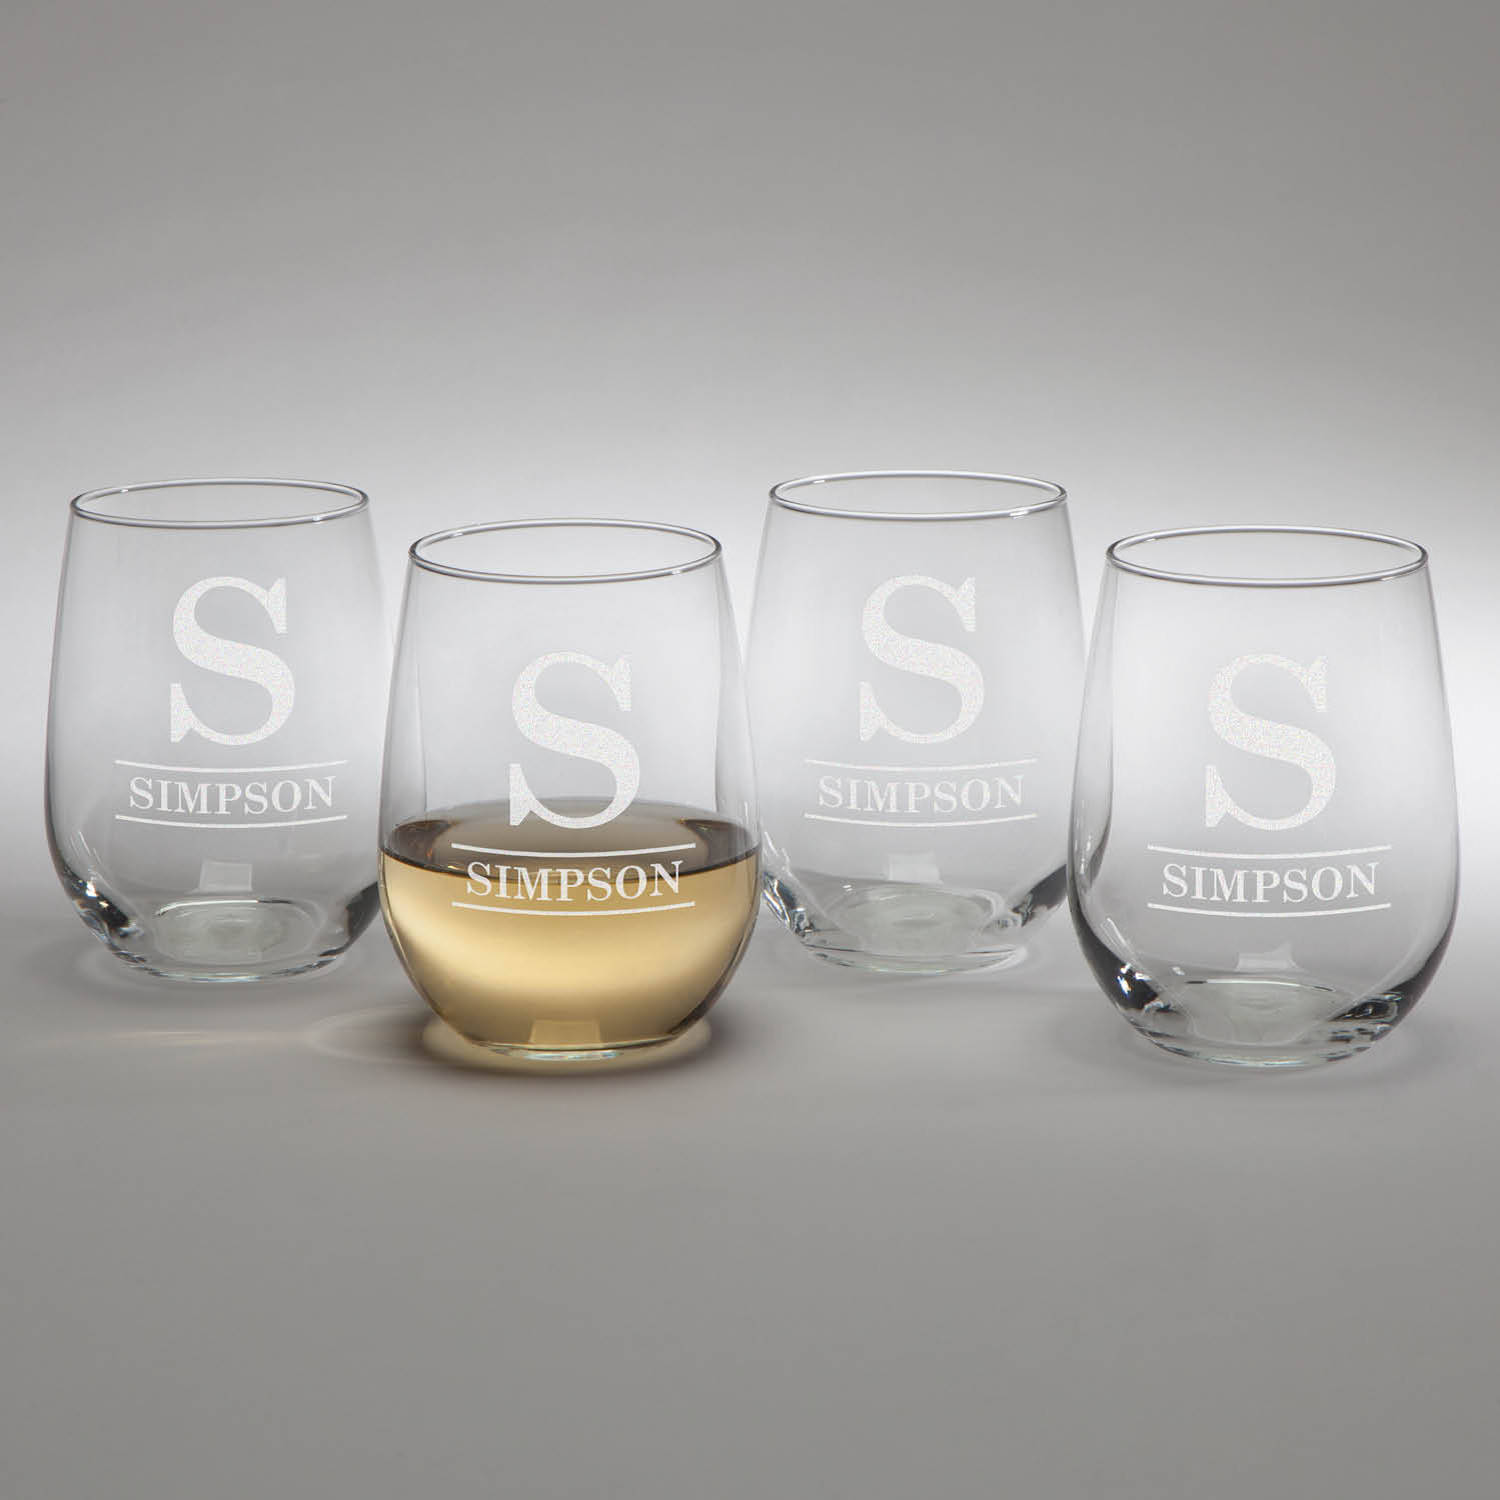 Personalized Family Name Stemless Wine Glasses, Set of 4, 4 Styles to Choose From